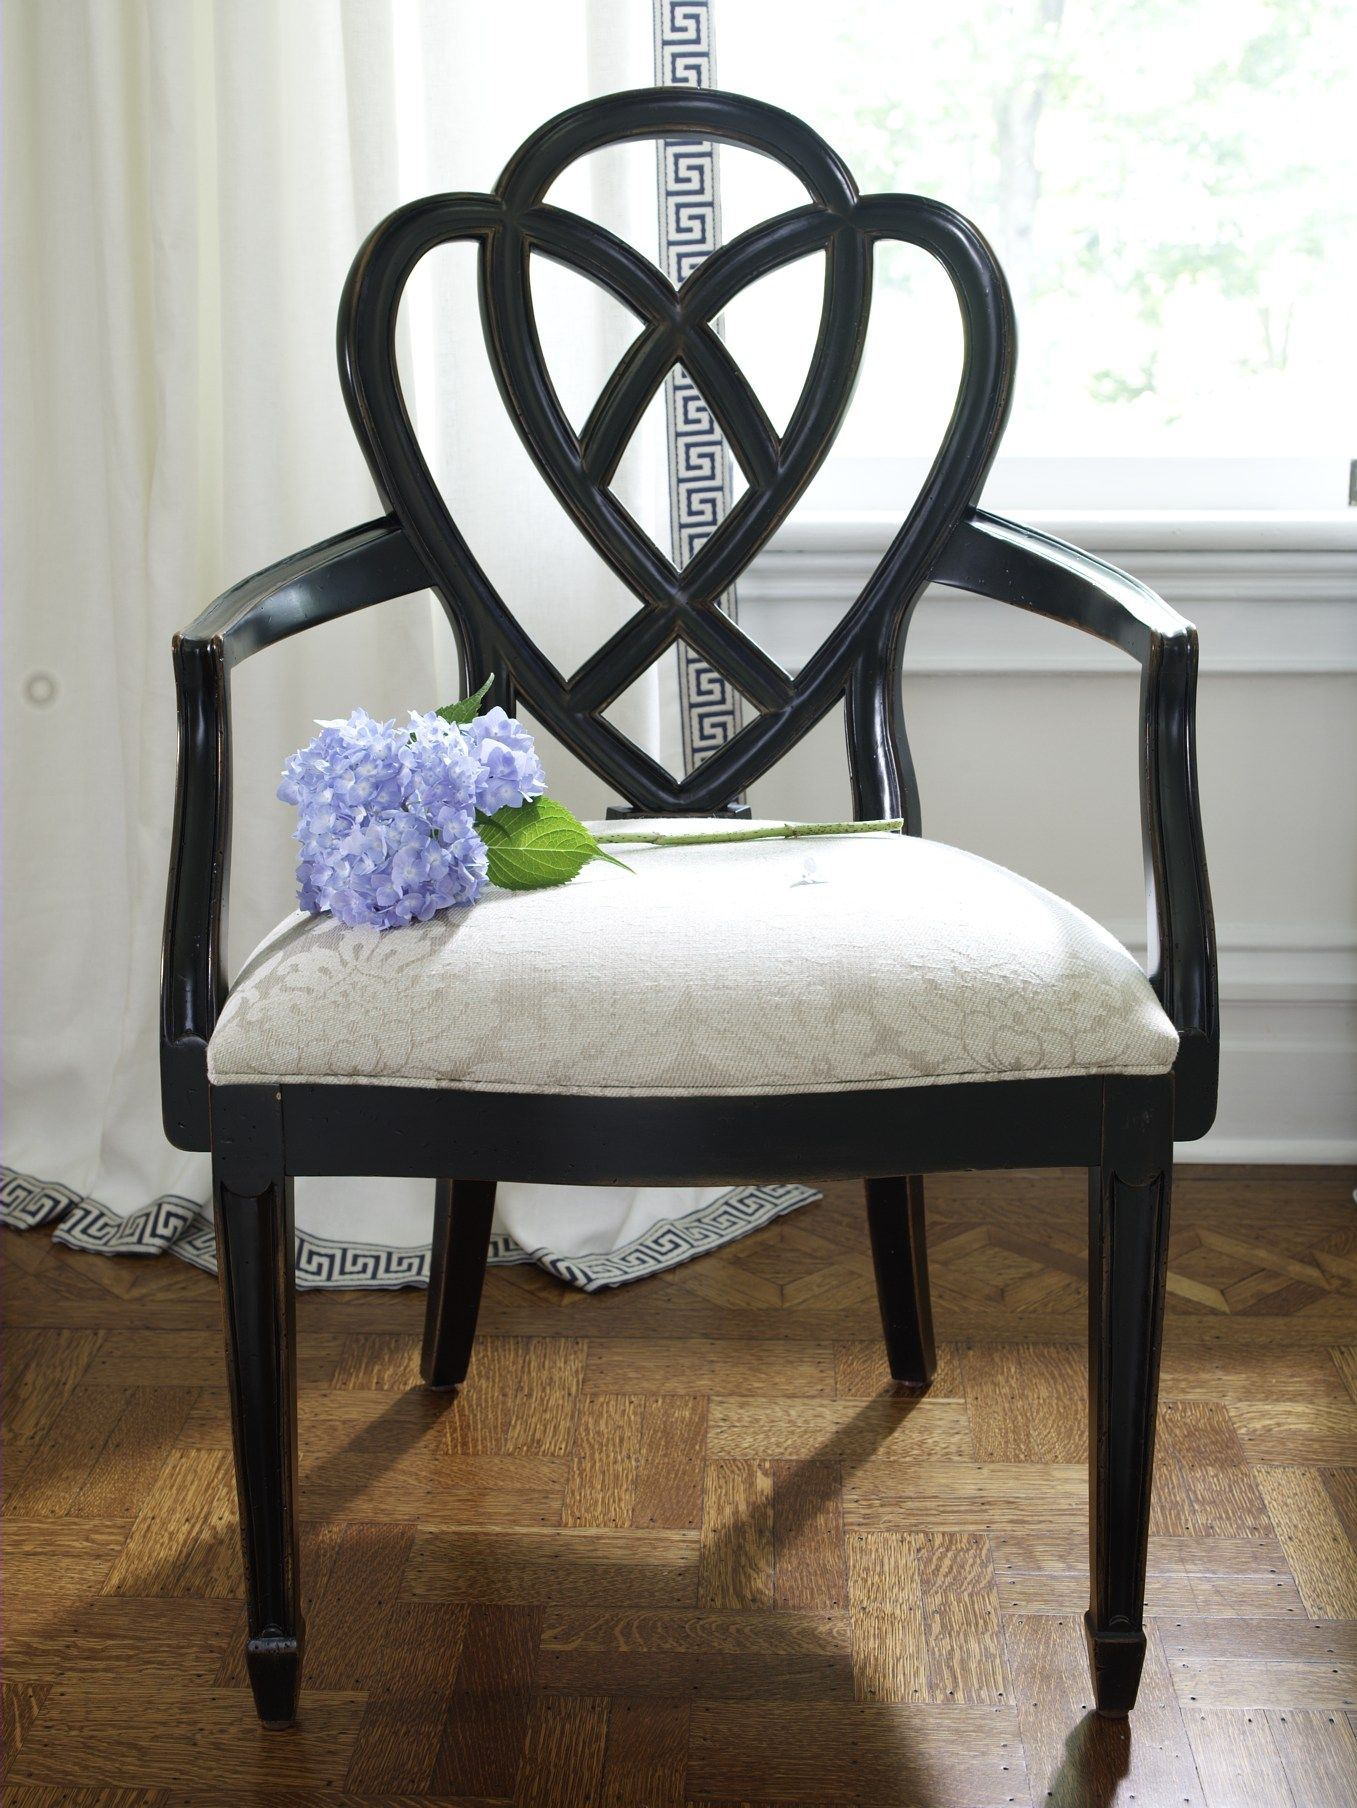 Surprising These Are My New Dining Room Chairs Just Delivered Yesterday Short Links Chair Design For Home Short Linksinfo